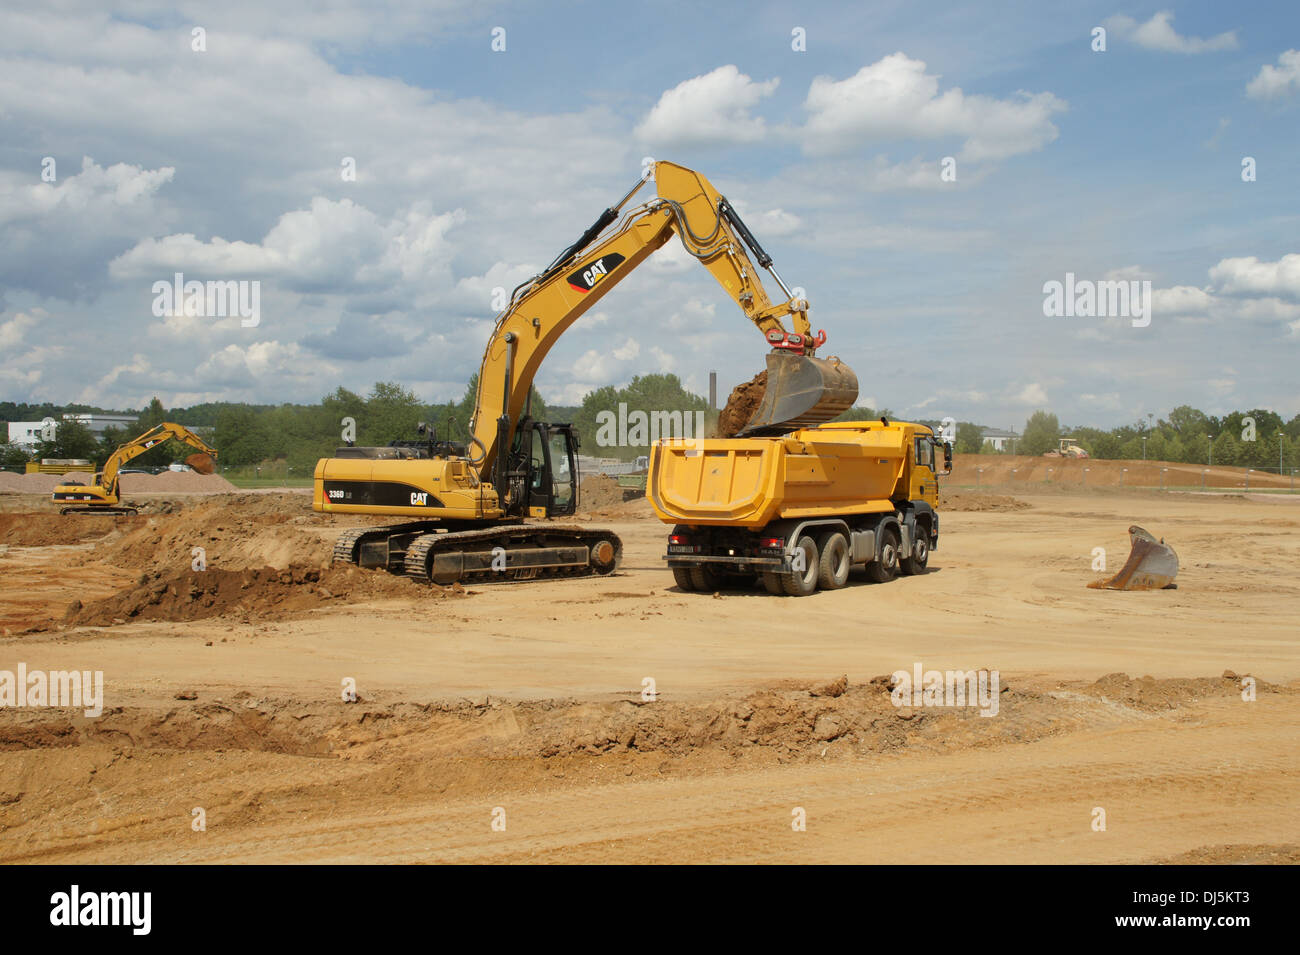 Digger at Work - Stock Image